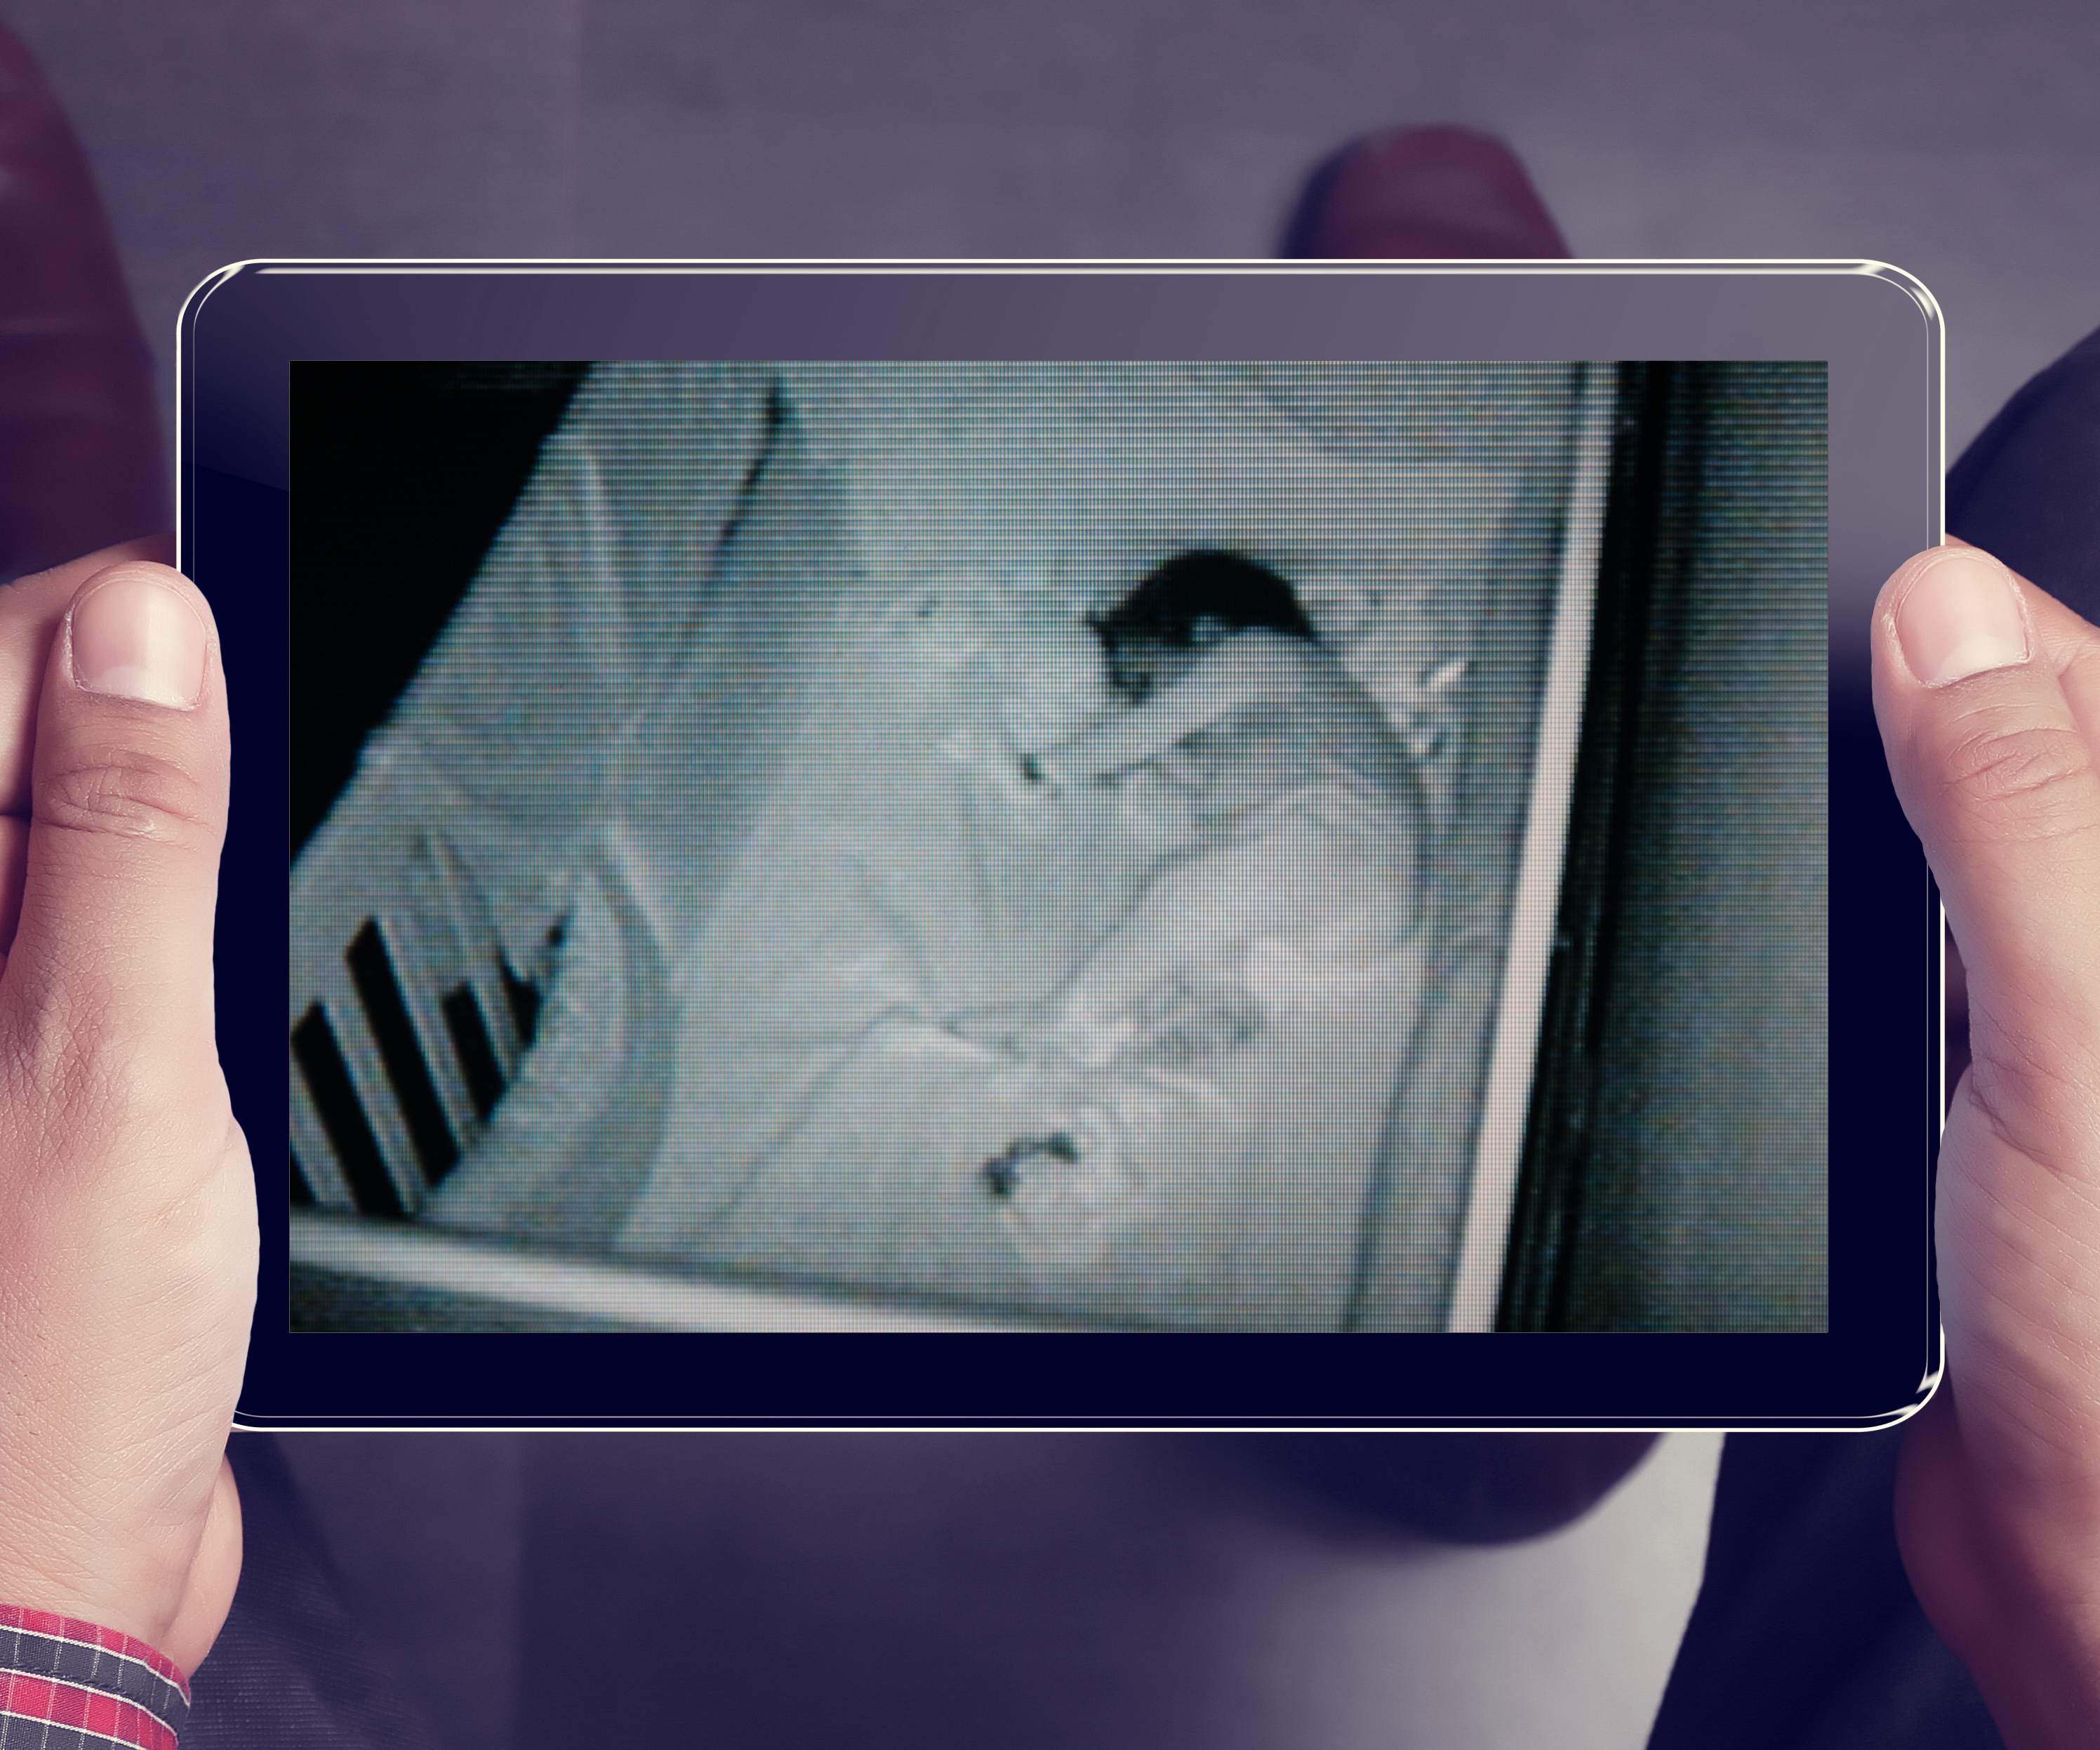 Photo of video image shown on tablet device